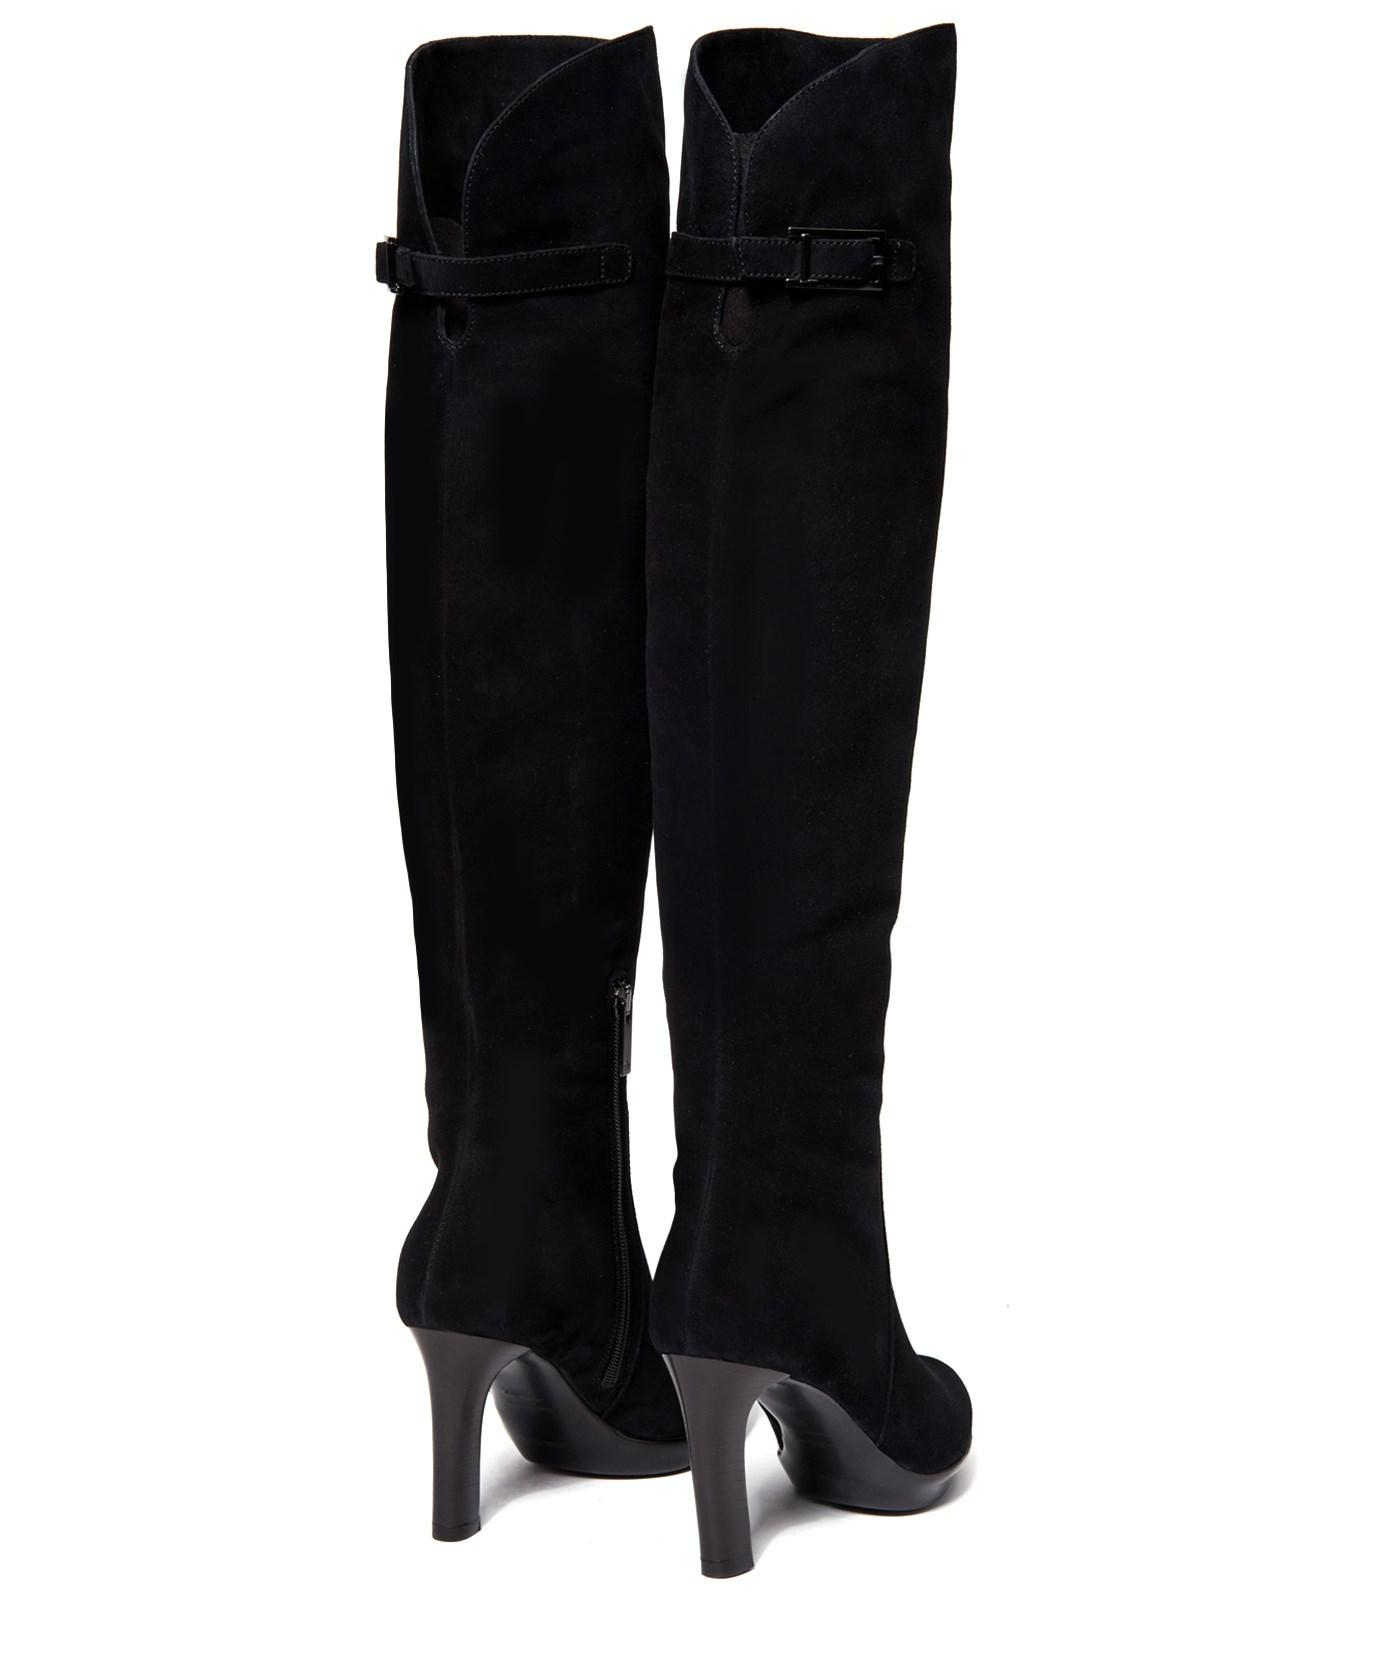 Aquatalia Raffaela Suede Over-The-Knee Boots in Black